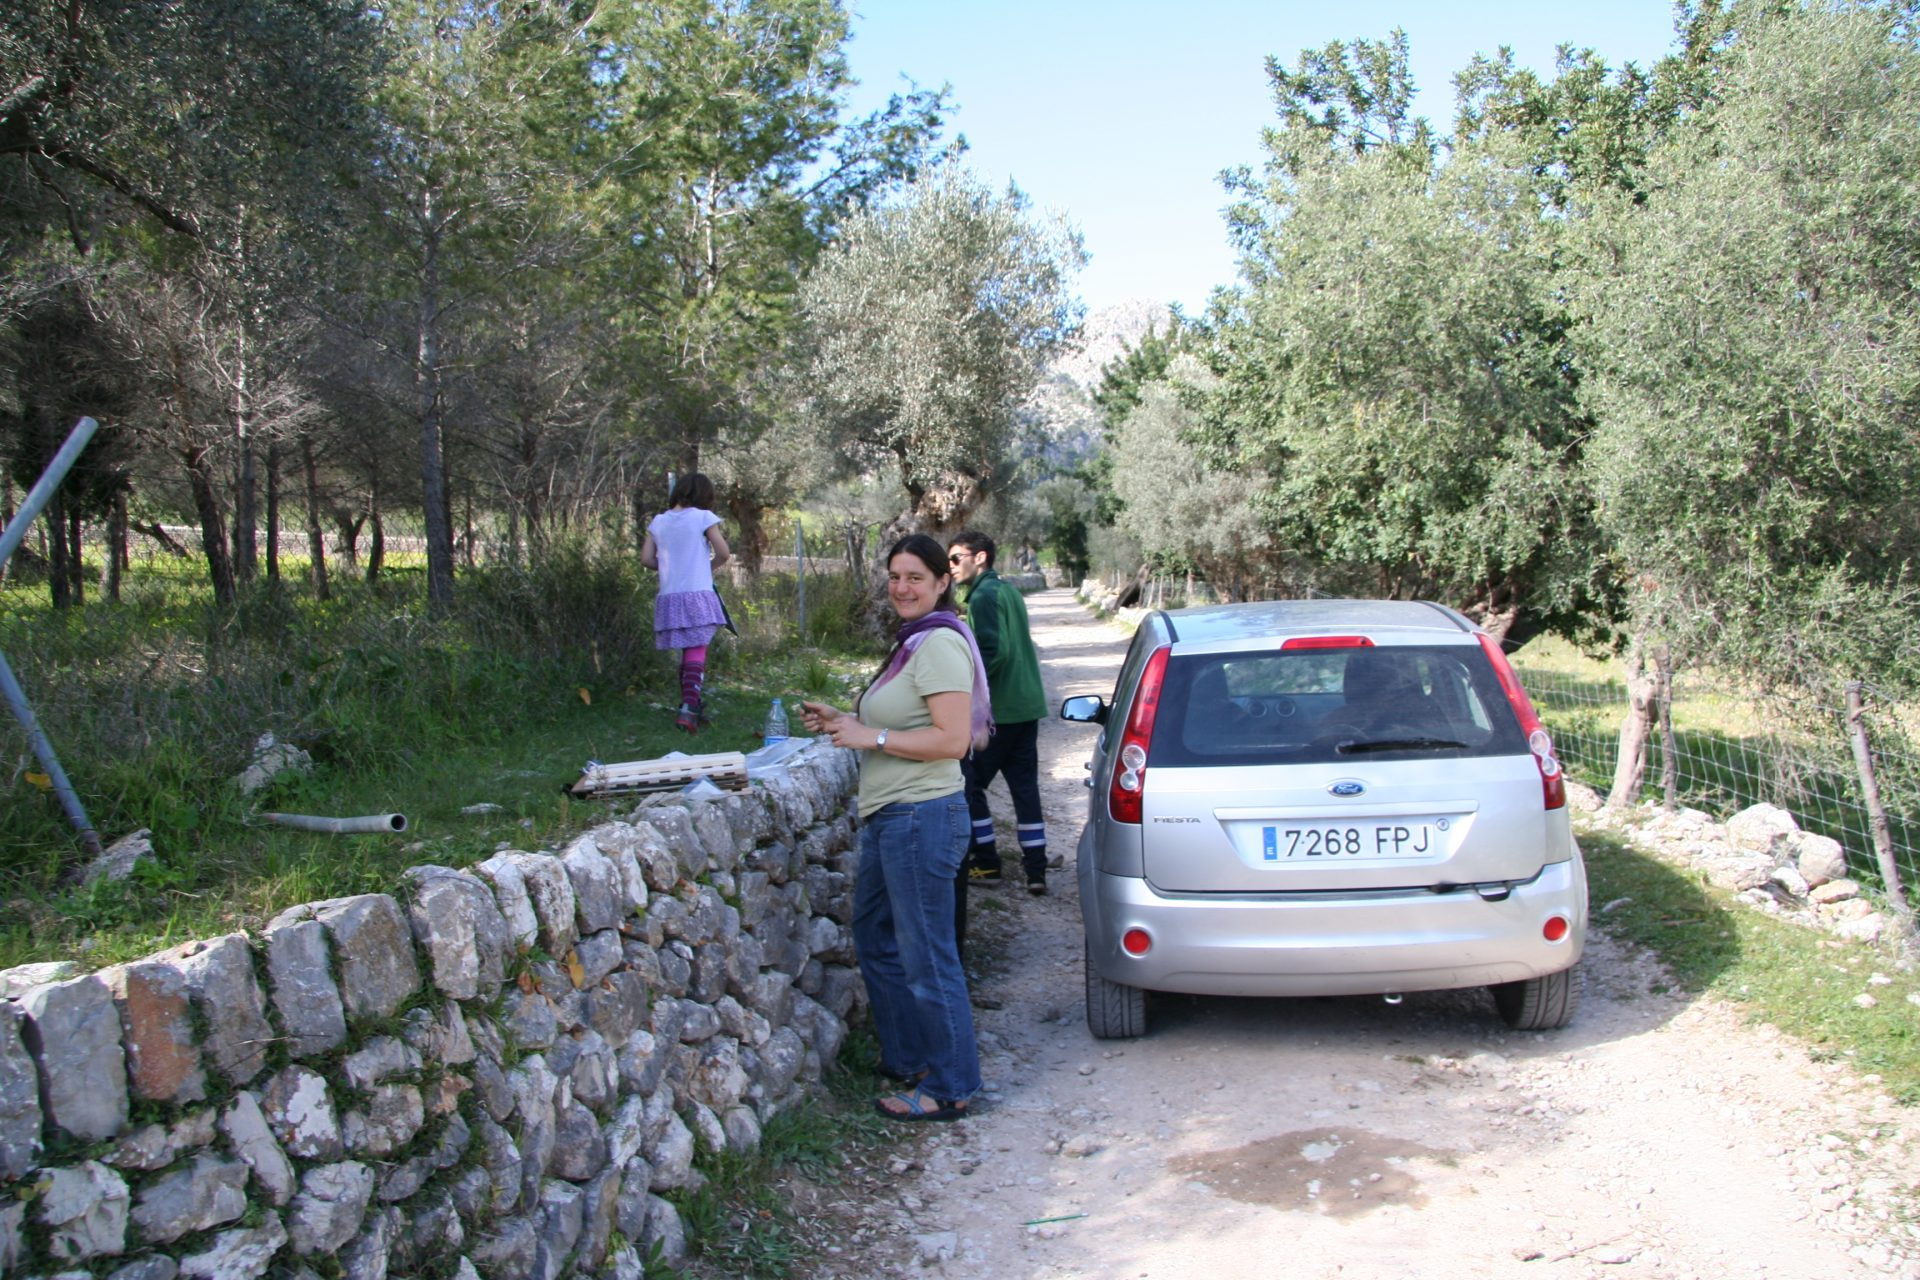 Collecting Veronica plants in Mallorca, Spain, with local botanist and PhD student Jaume Seguí Colomar. Photo by Mauricio López.